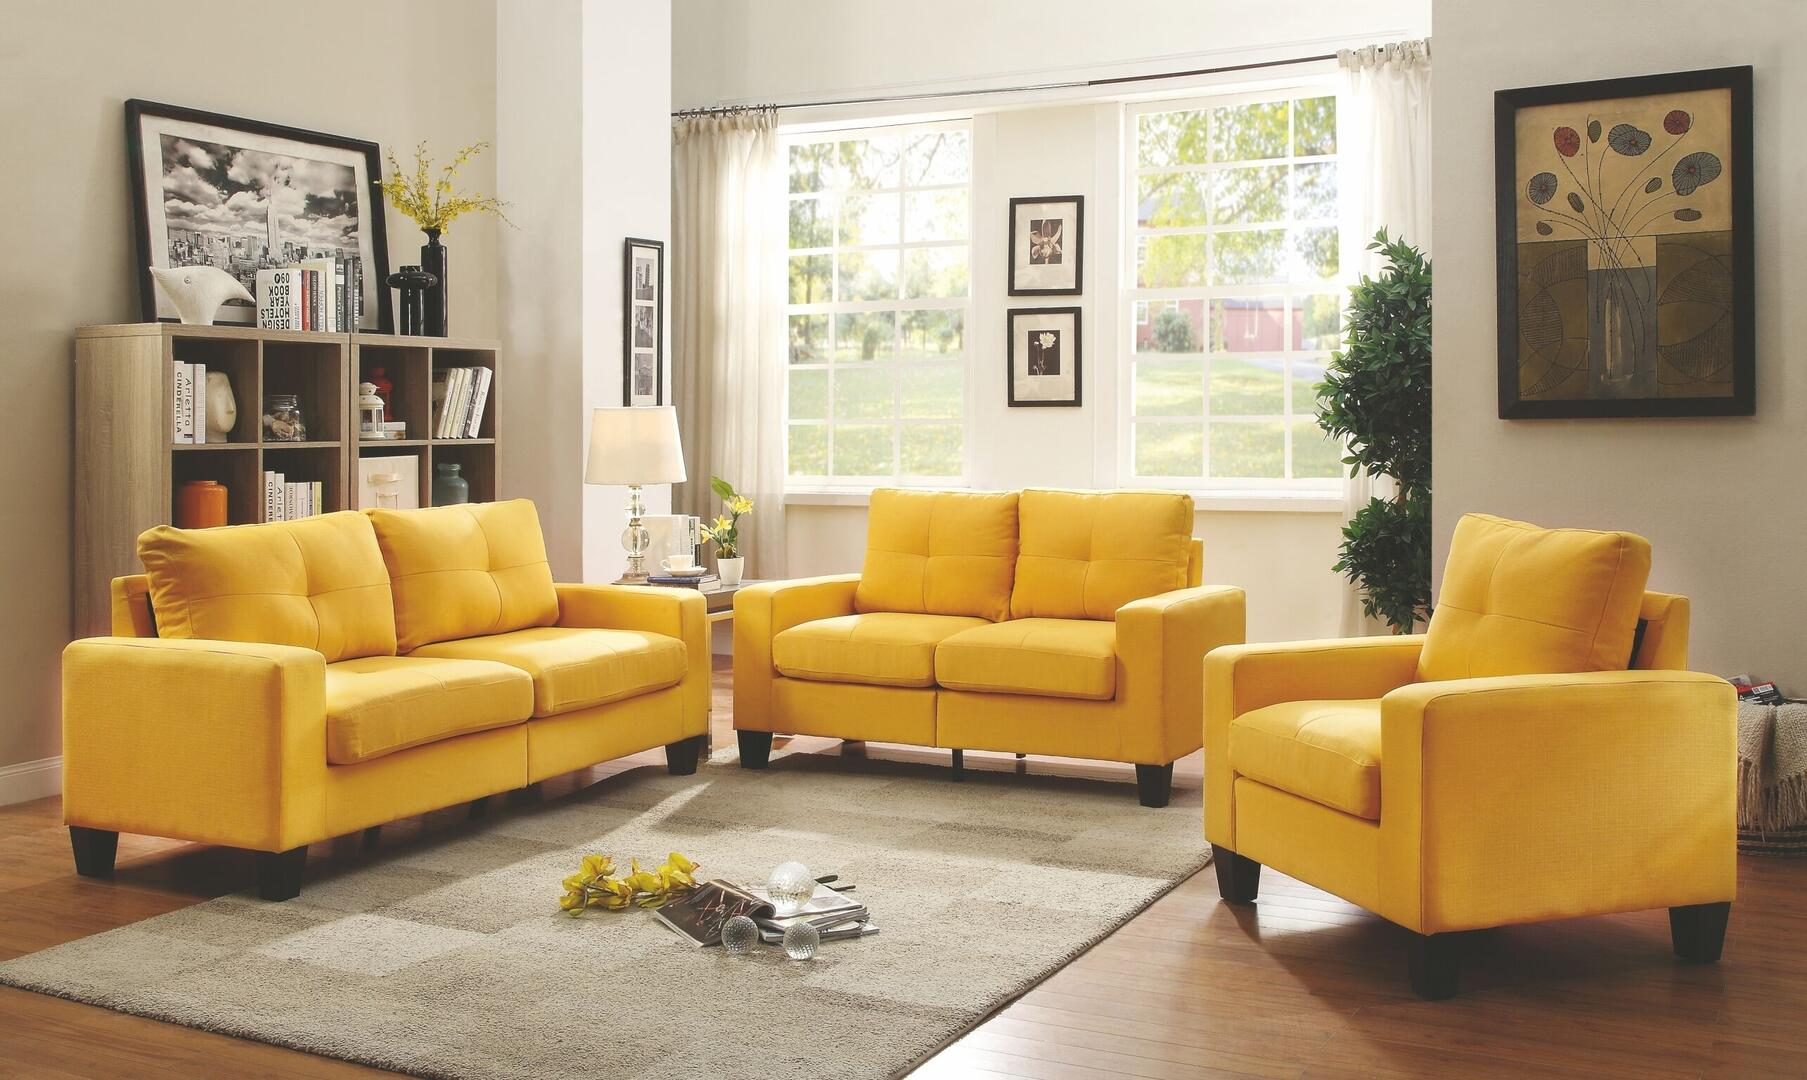 Glory furniture g470aset newbury living room sets for Living room of satoshi tax